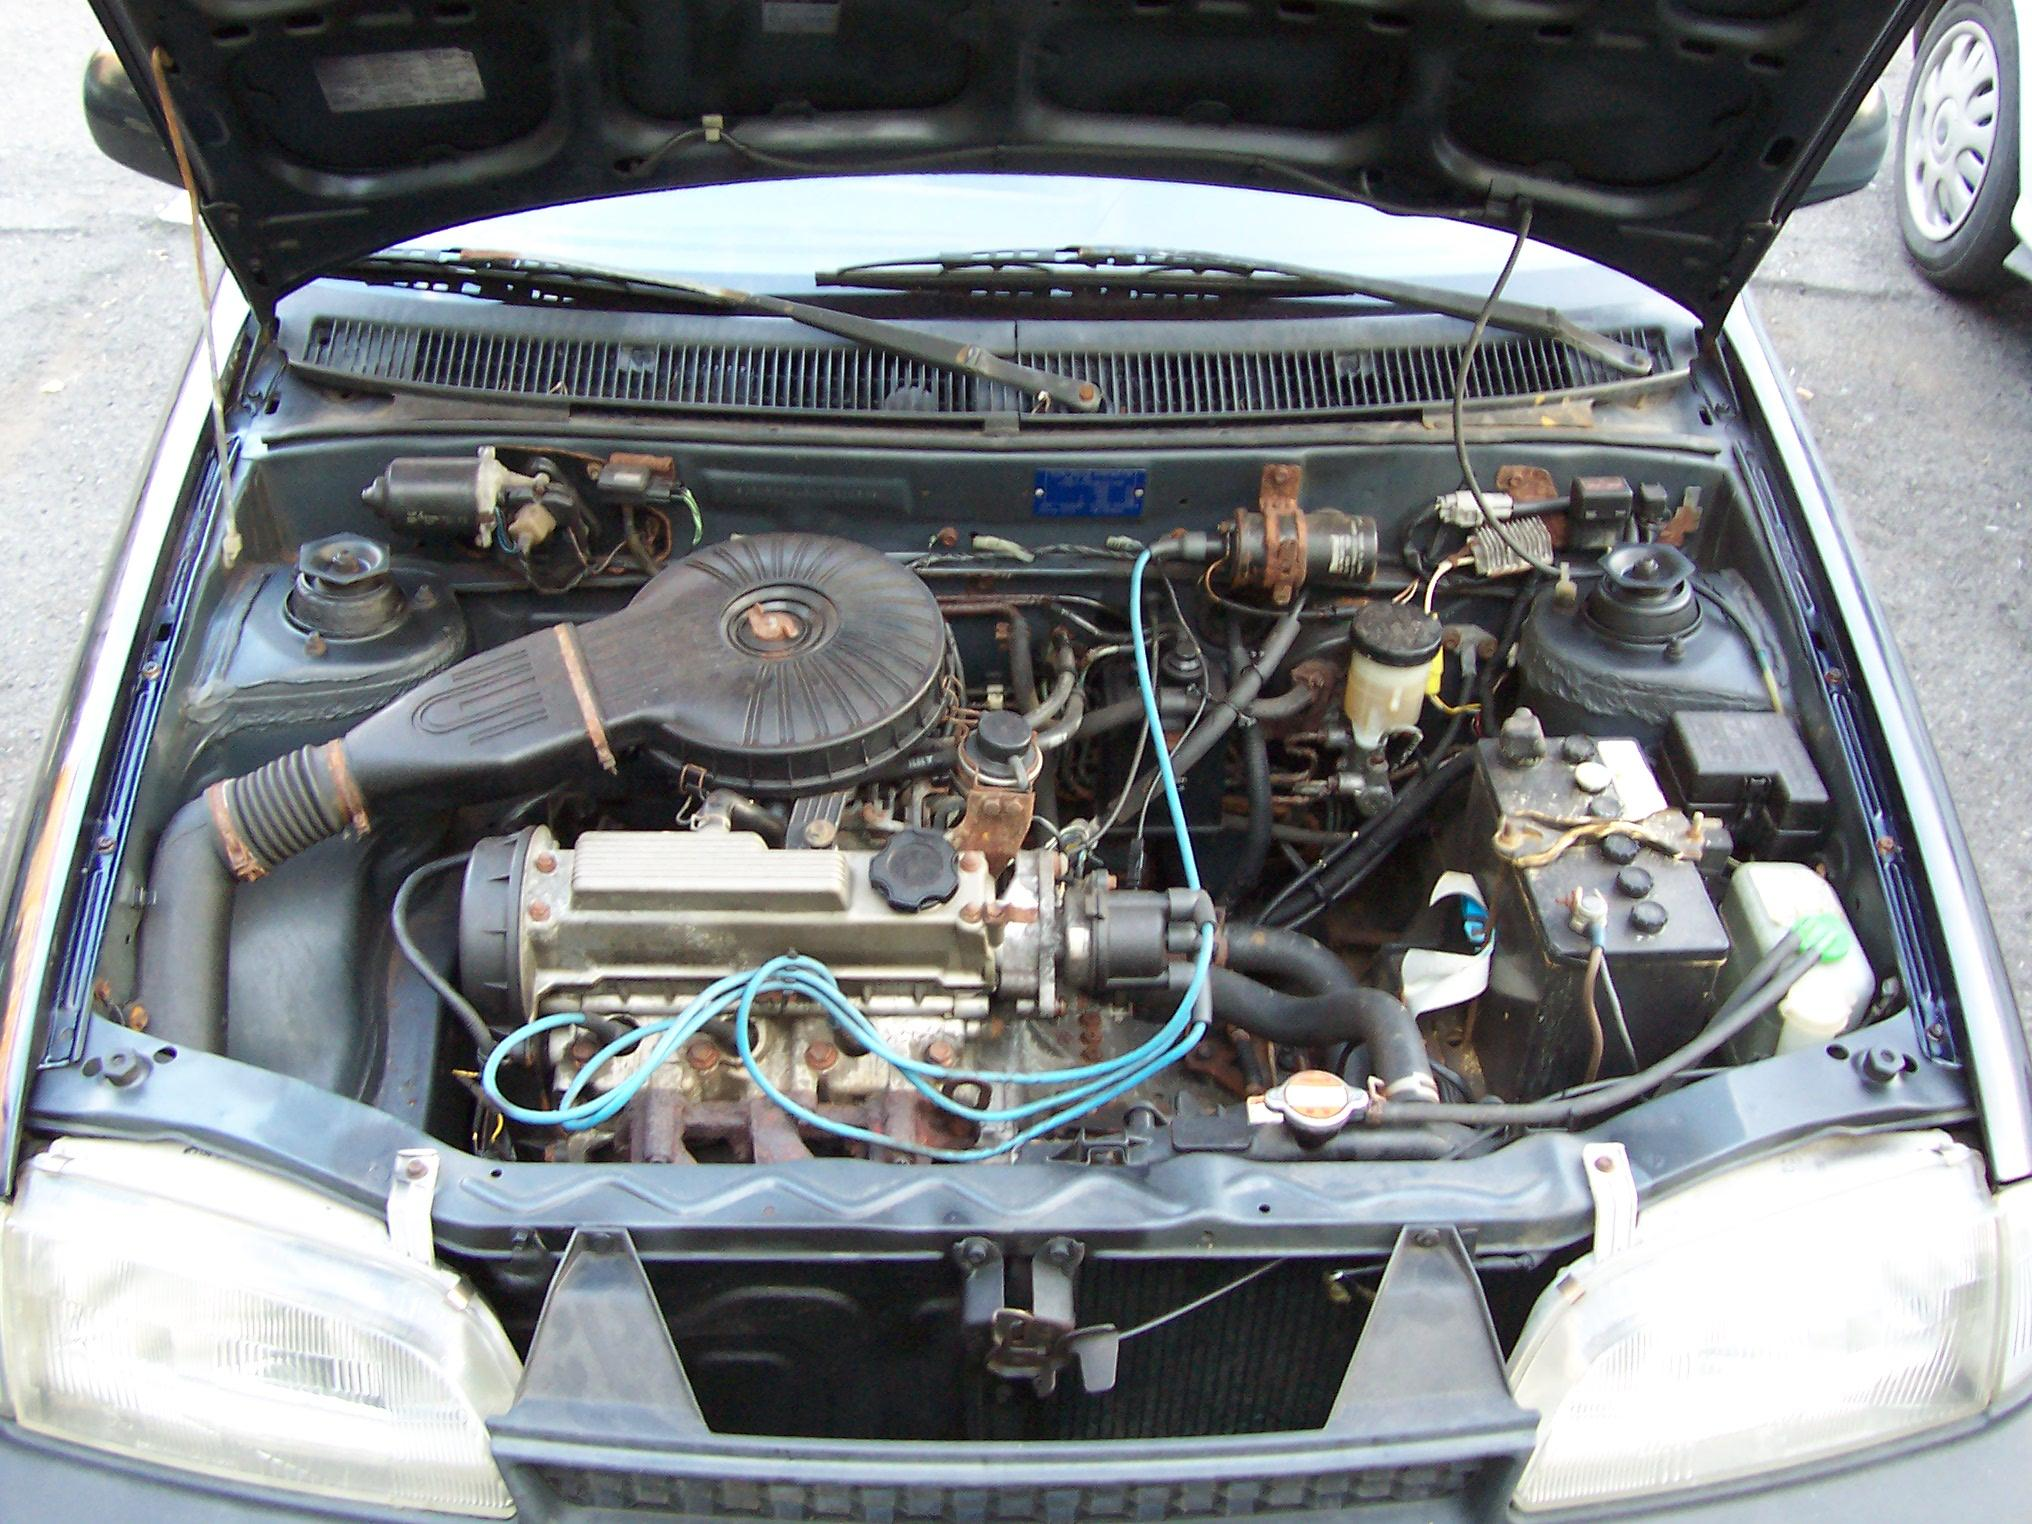 SUZUKI SWIFT 1.0 engine